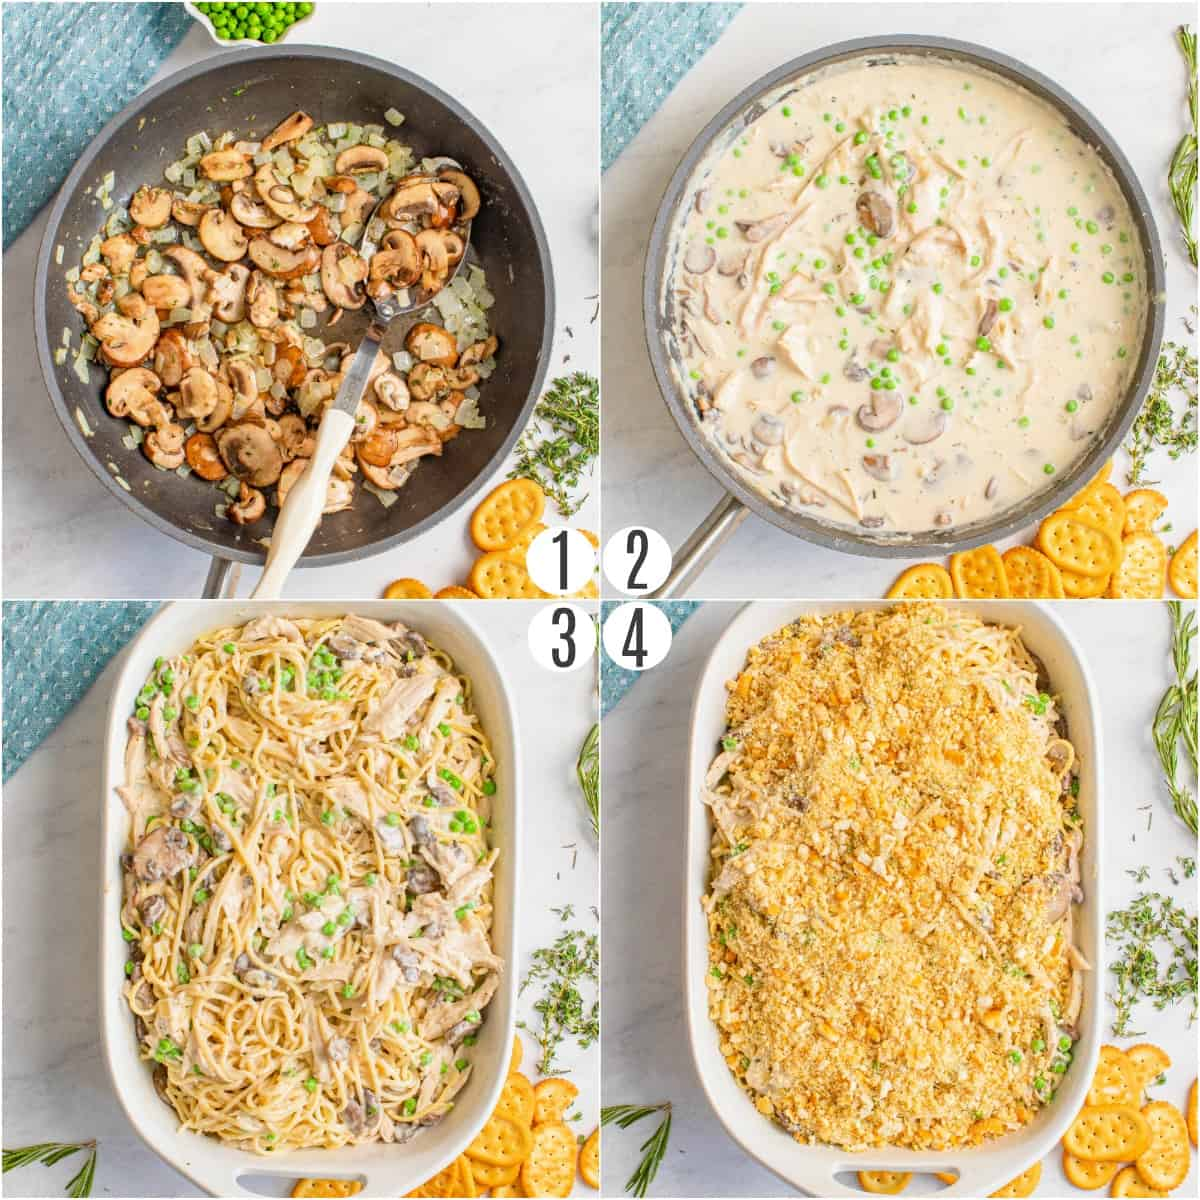 Step by step photos showing how to make turkey tetrazzini.